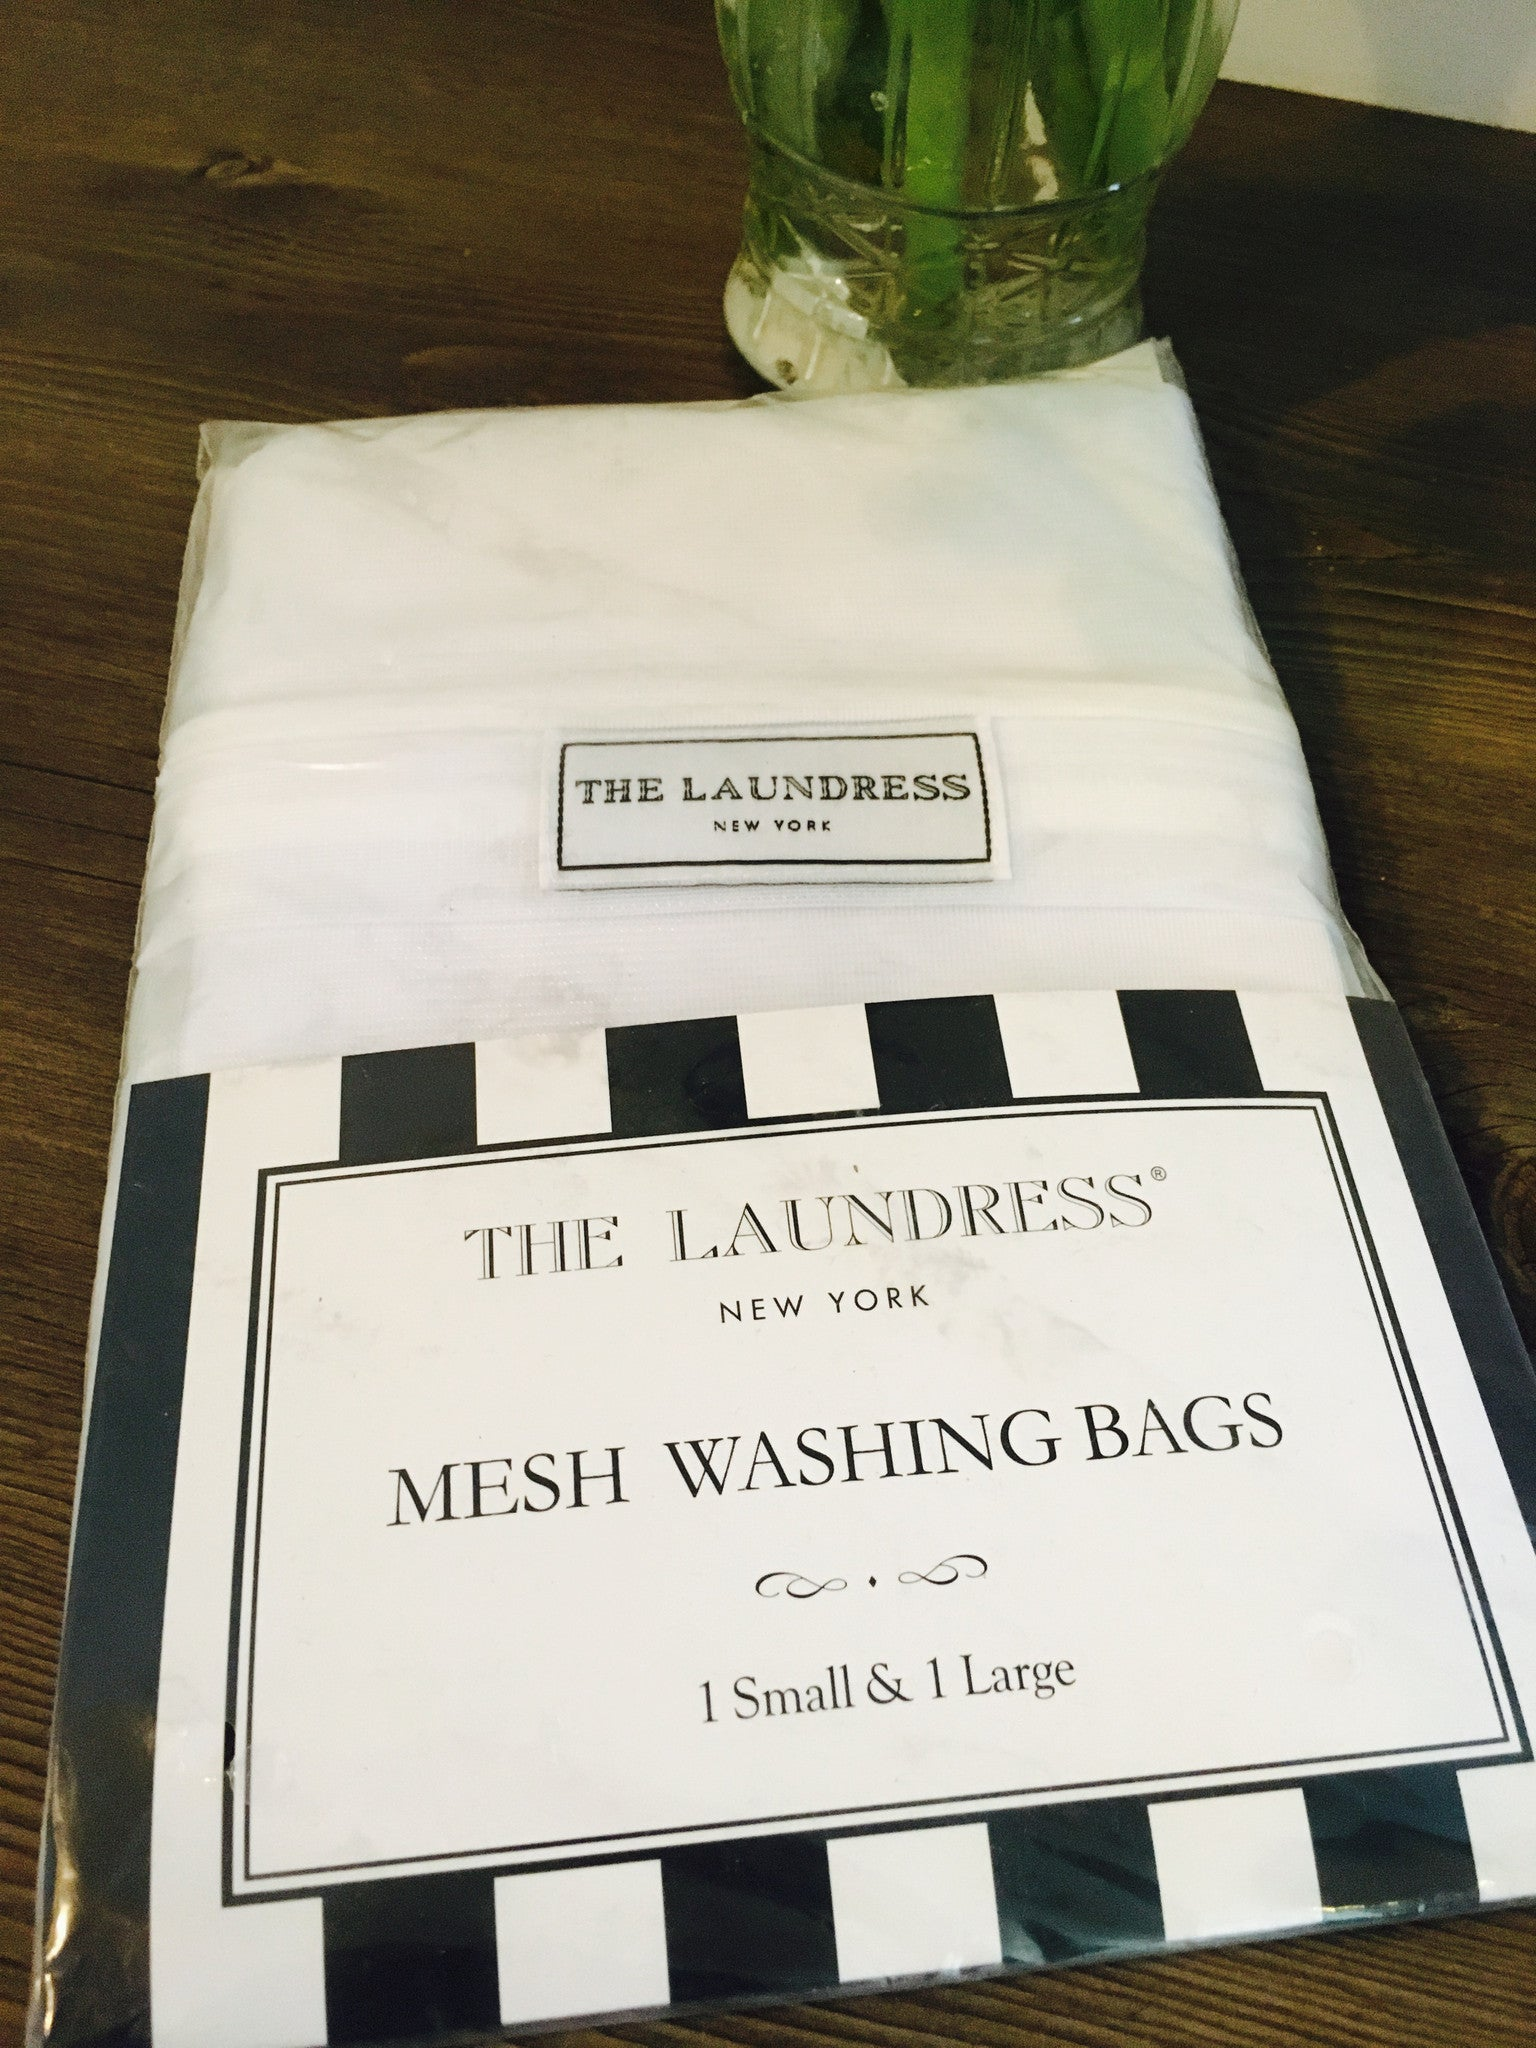 The Laundress - Mesh Laundry Bag